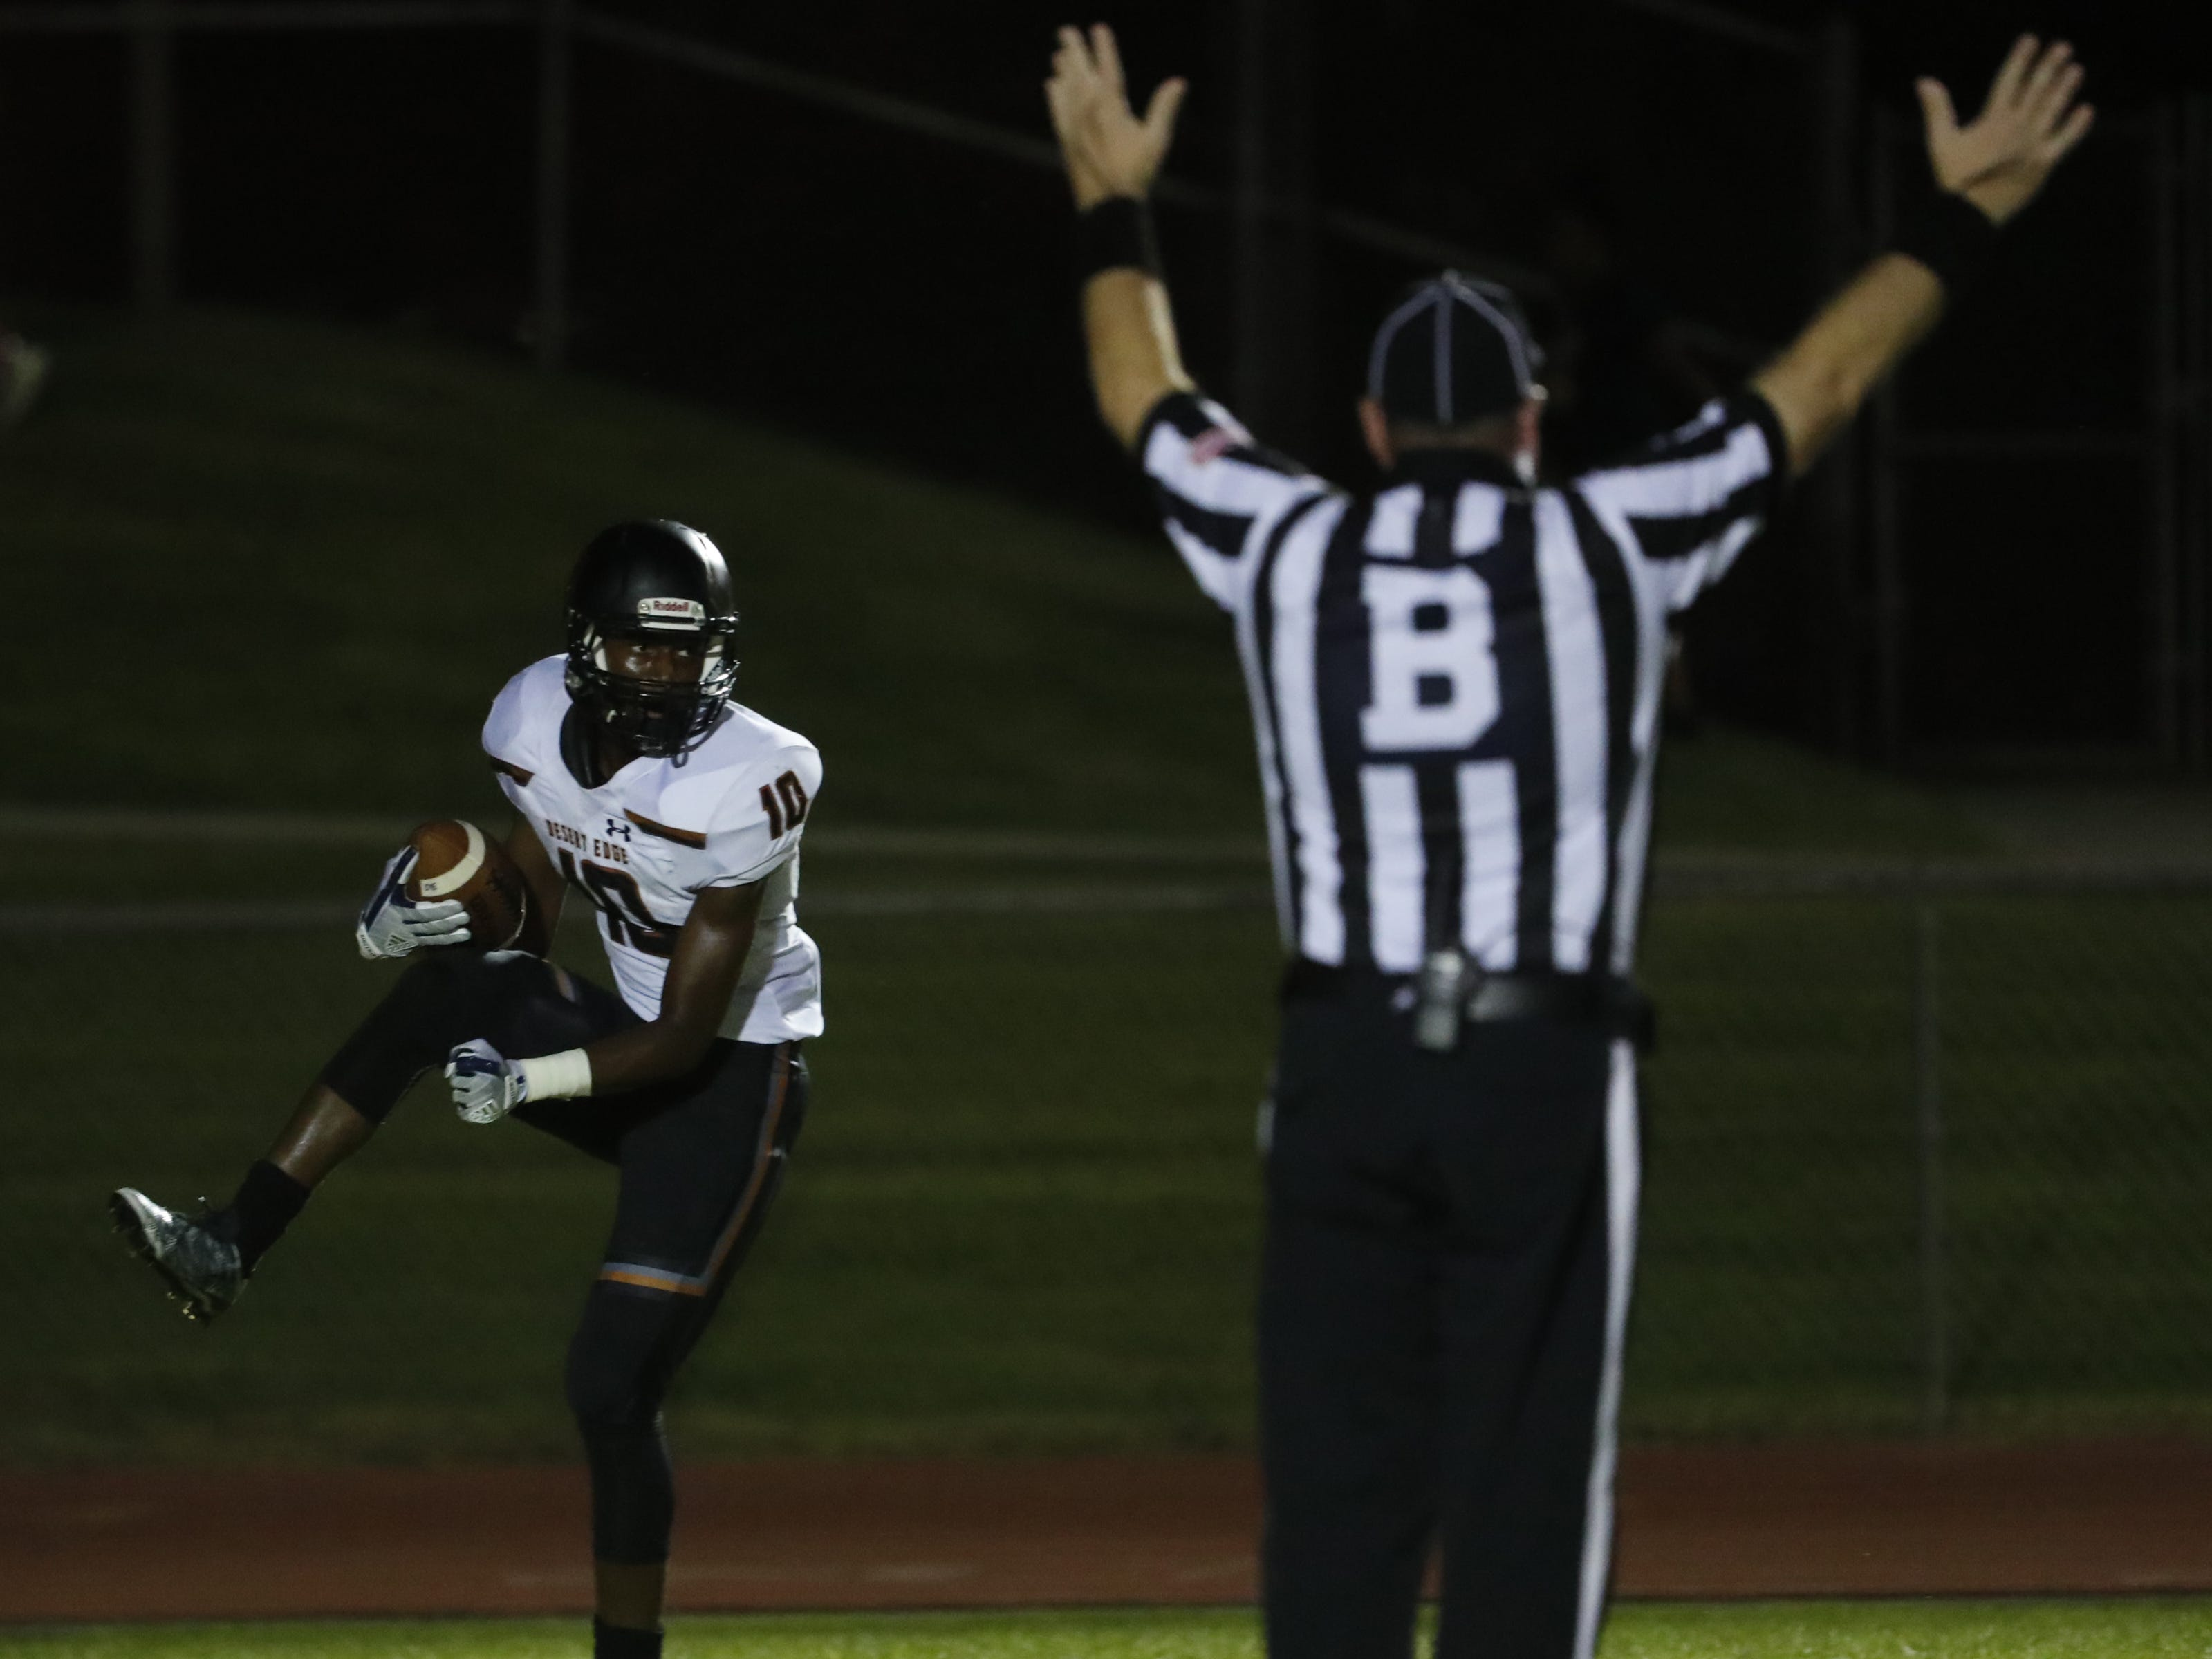 Desert Edge's Jihad Marks (10) celebrates a touchdown against Millennium during a game at Millennium High School in Goodyear, Ariz. on Sept. 7, 2018.